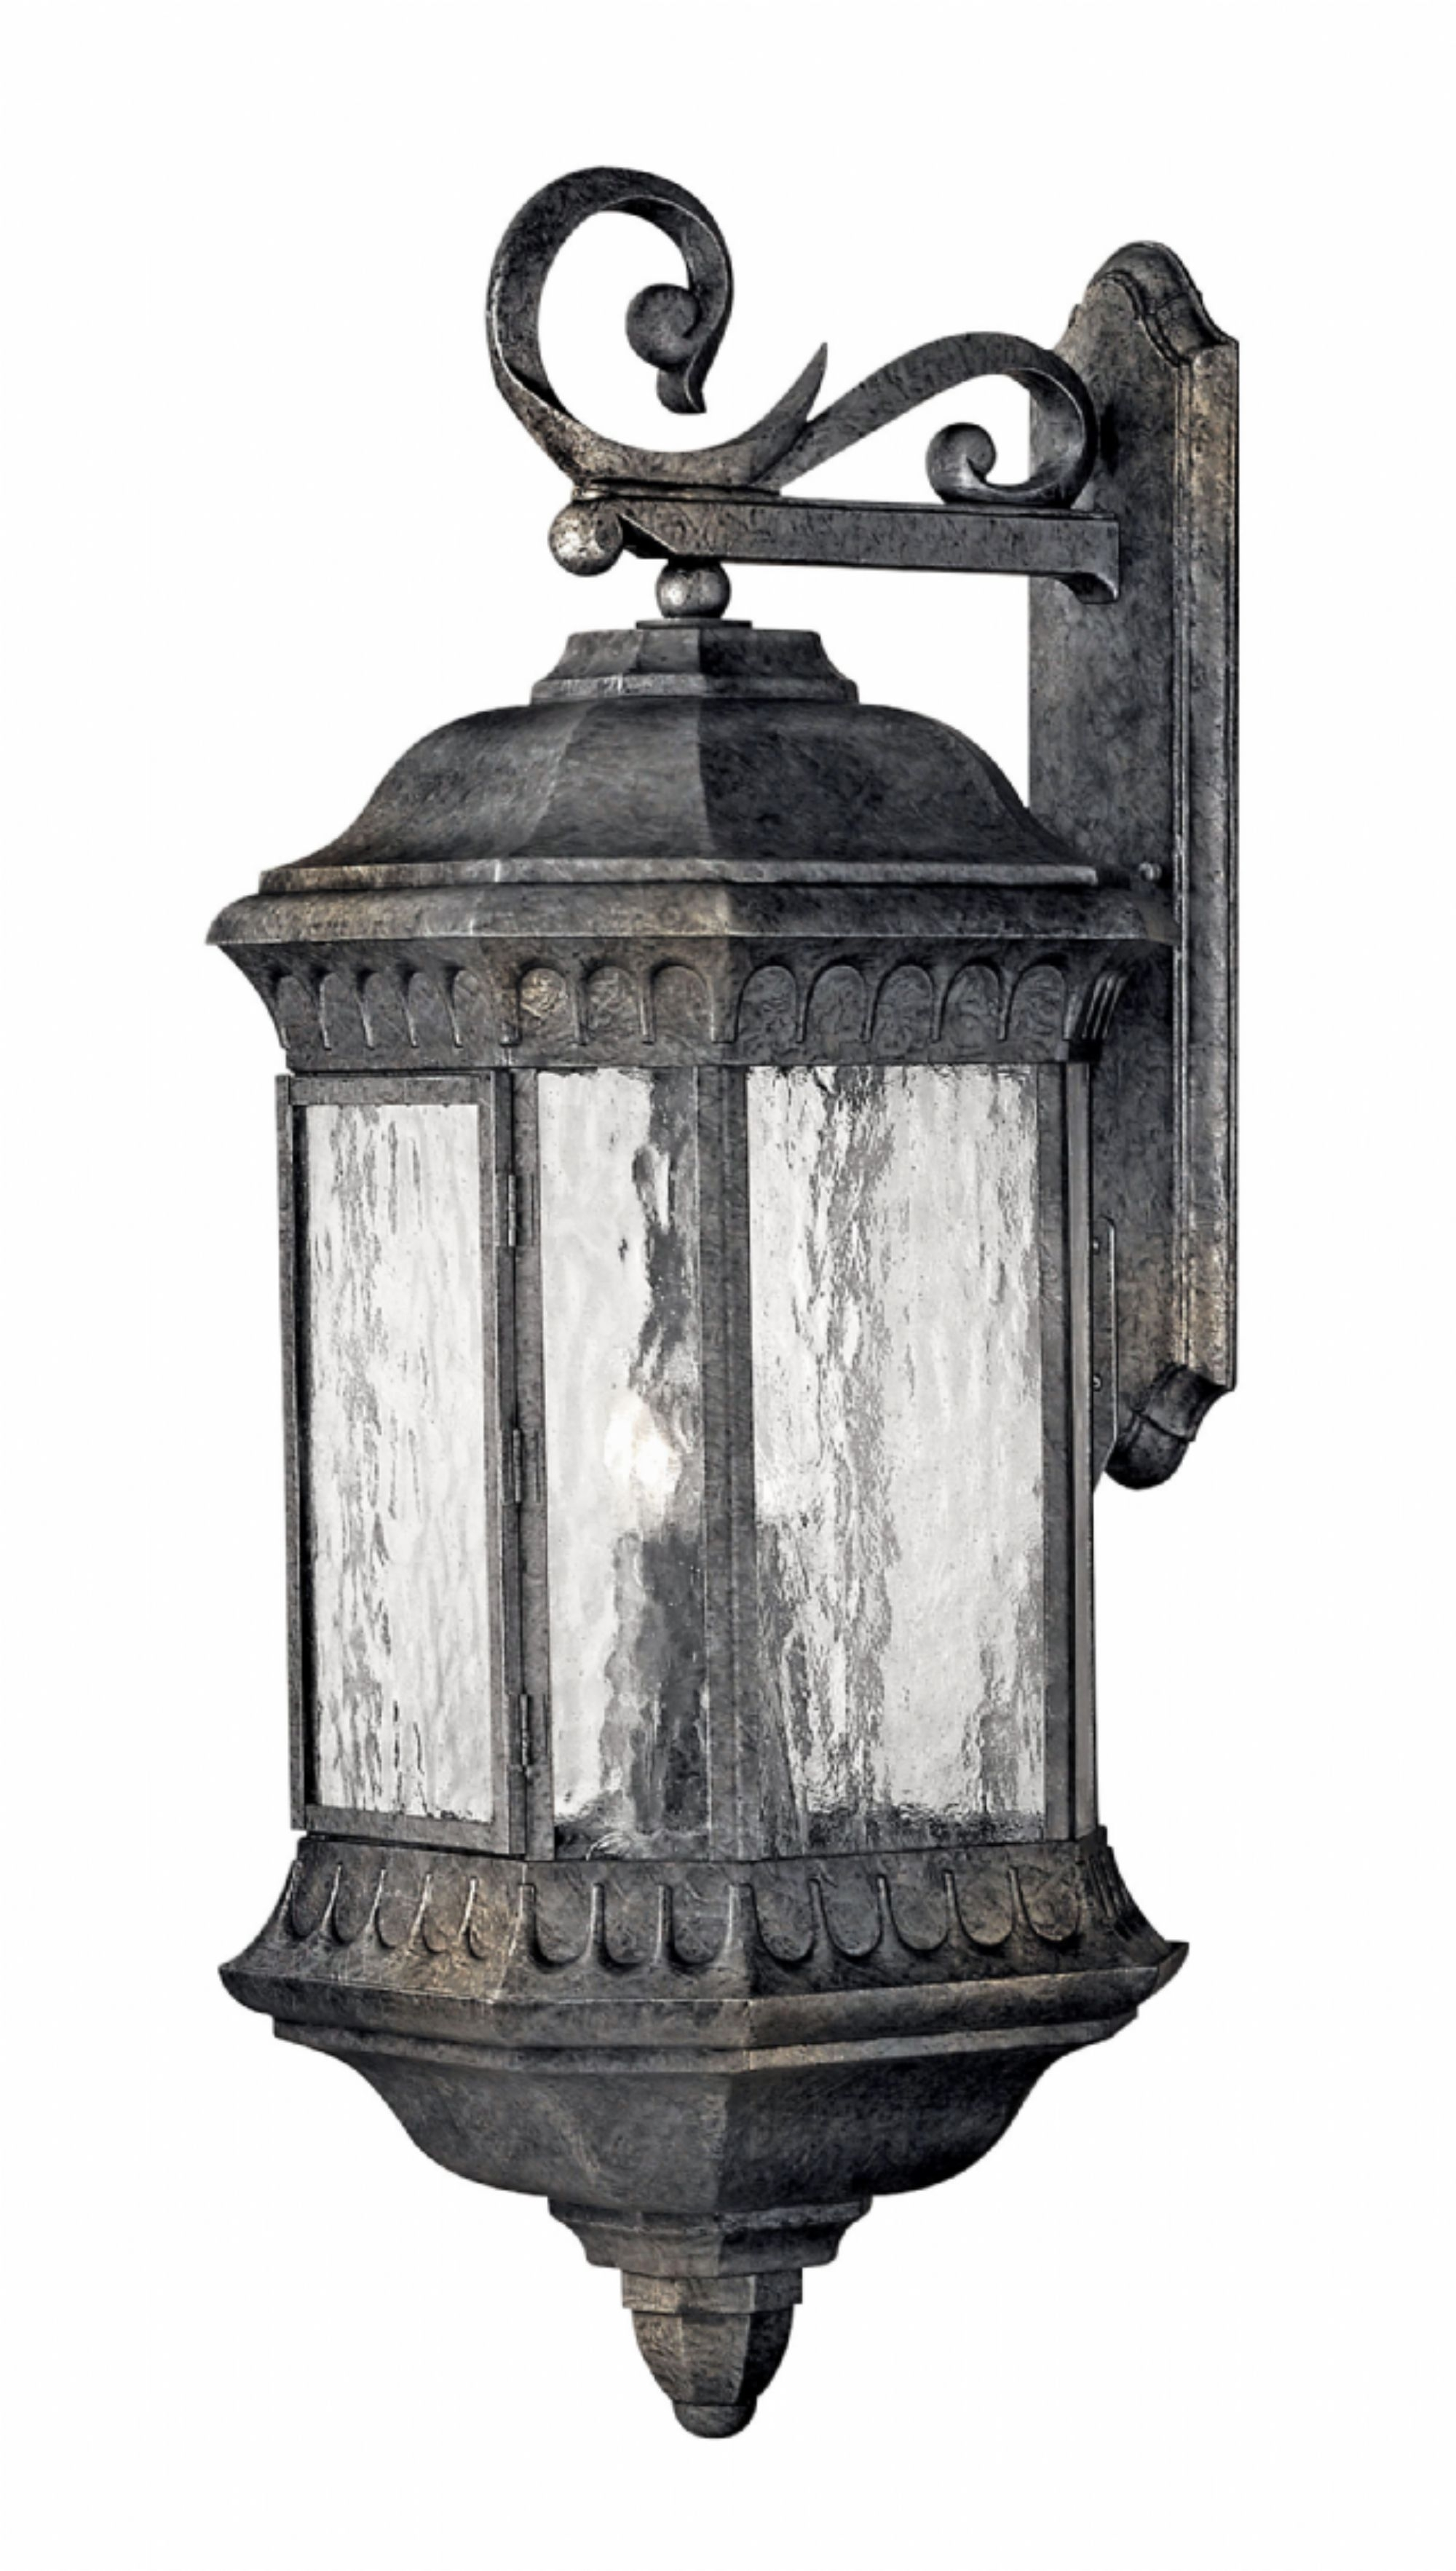 Black Granite Regal > Exterior Wall Mount pertaining to Outdoor Entrance Lanterns (Image 1 of 20)